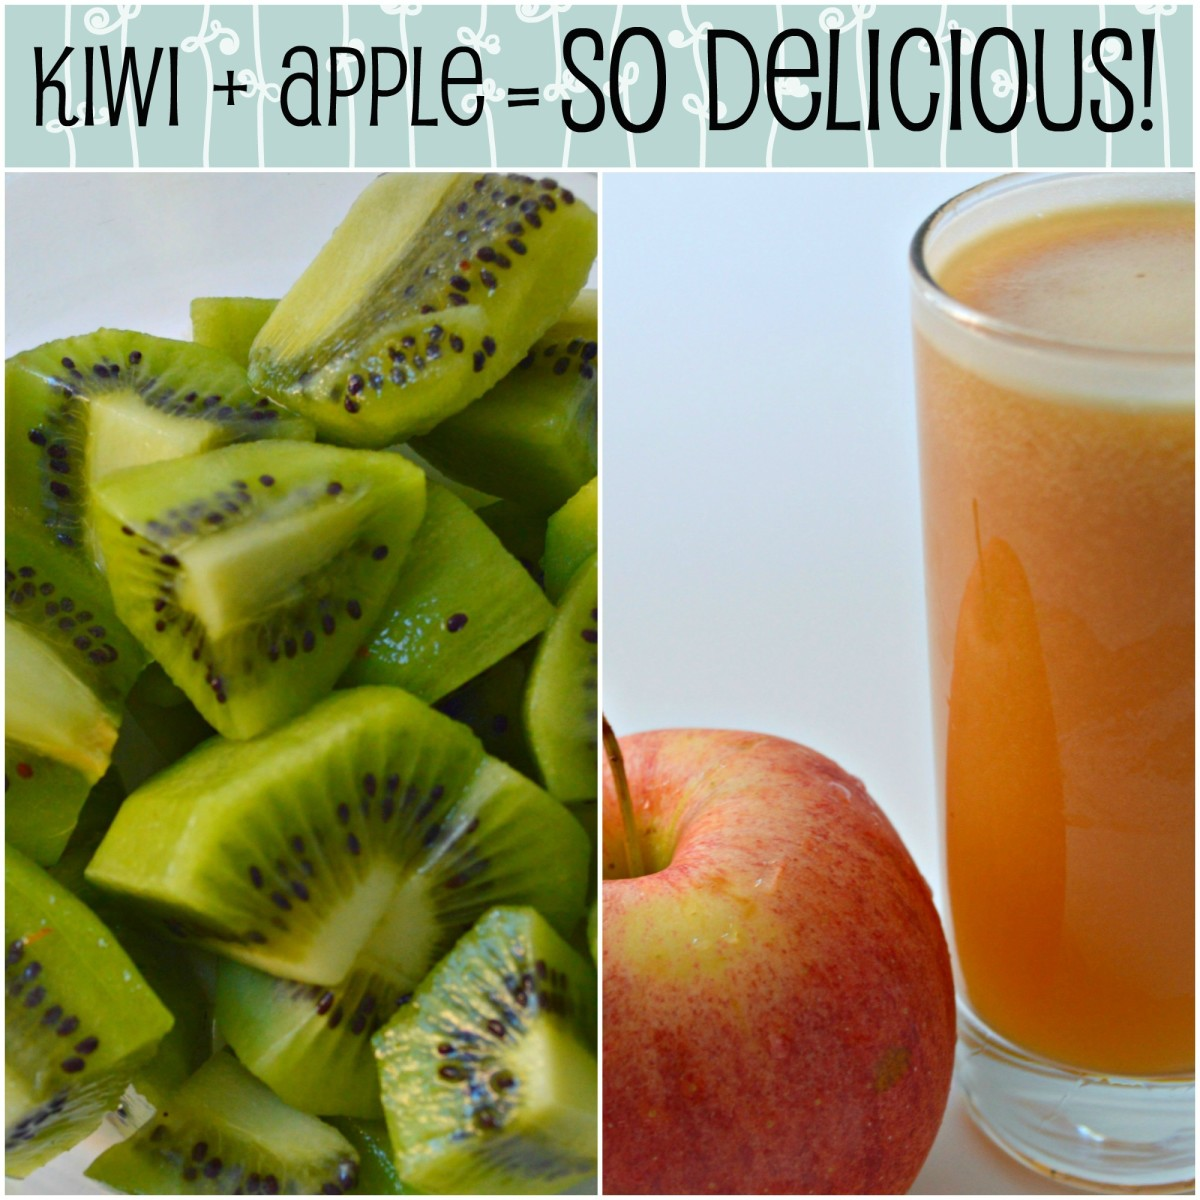 For a purely healthy juice with no sugar added, this is all you need!